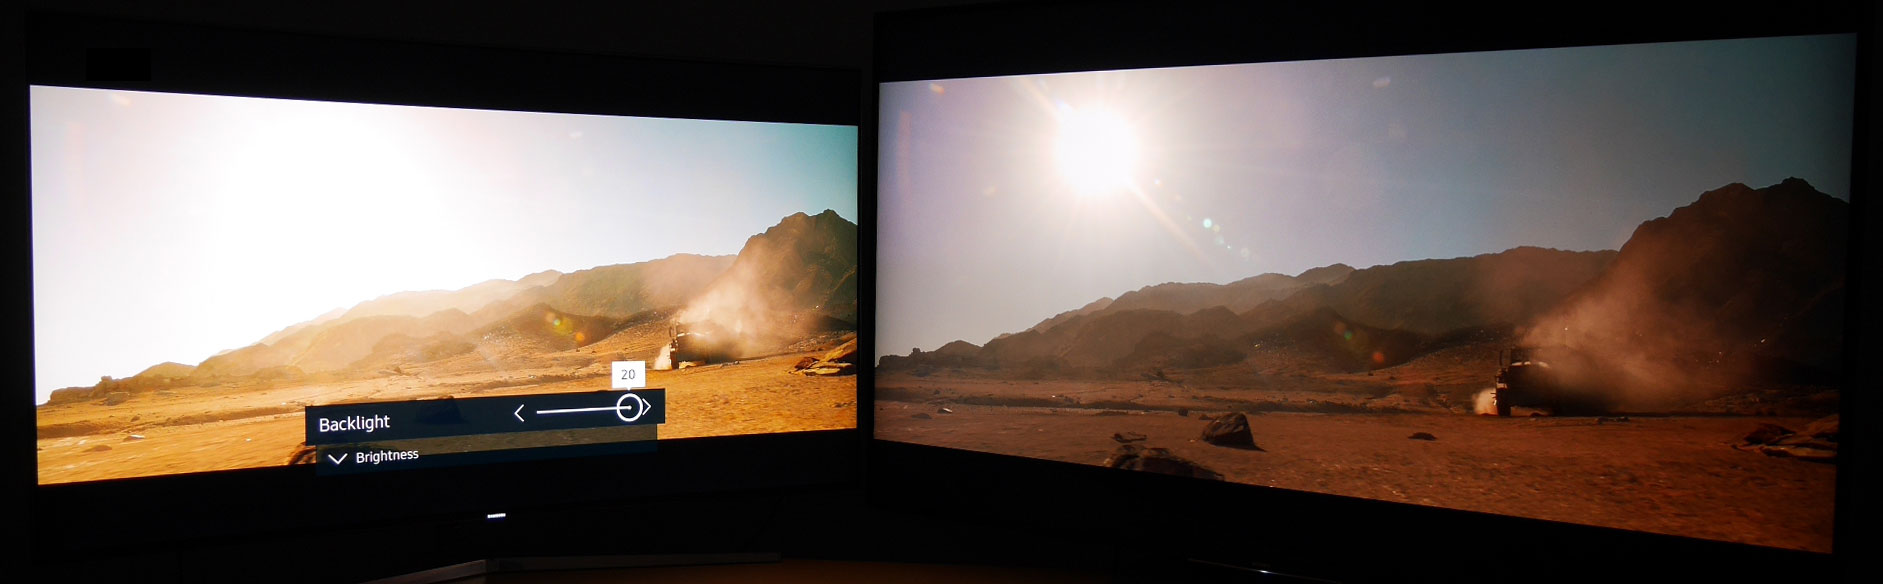 4K Blu-ray vs Blu-ray Reveals HDR Is Too Dim for Daytime